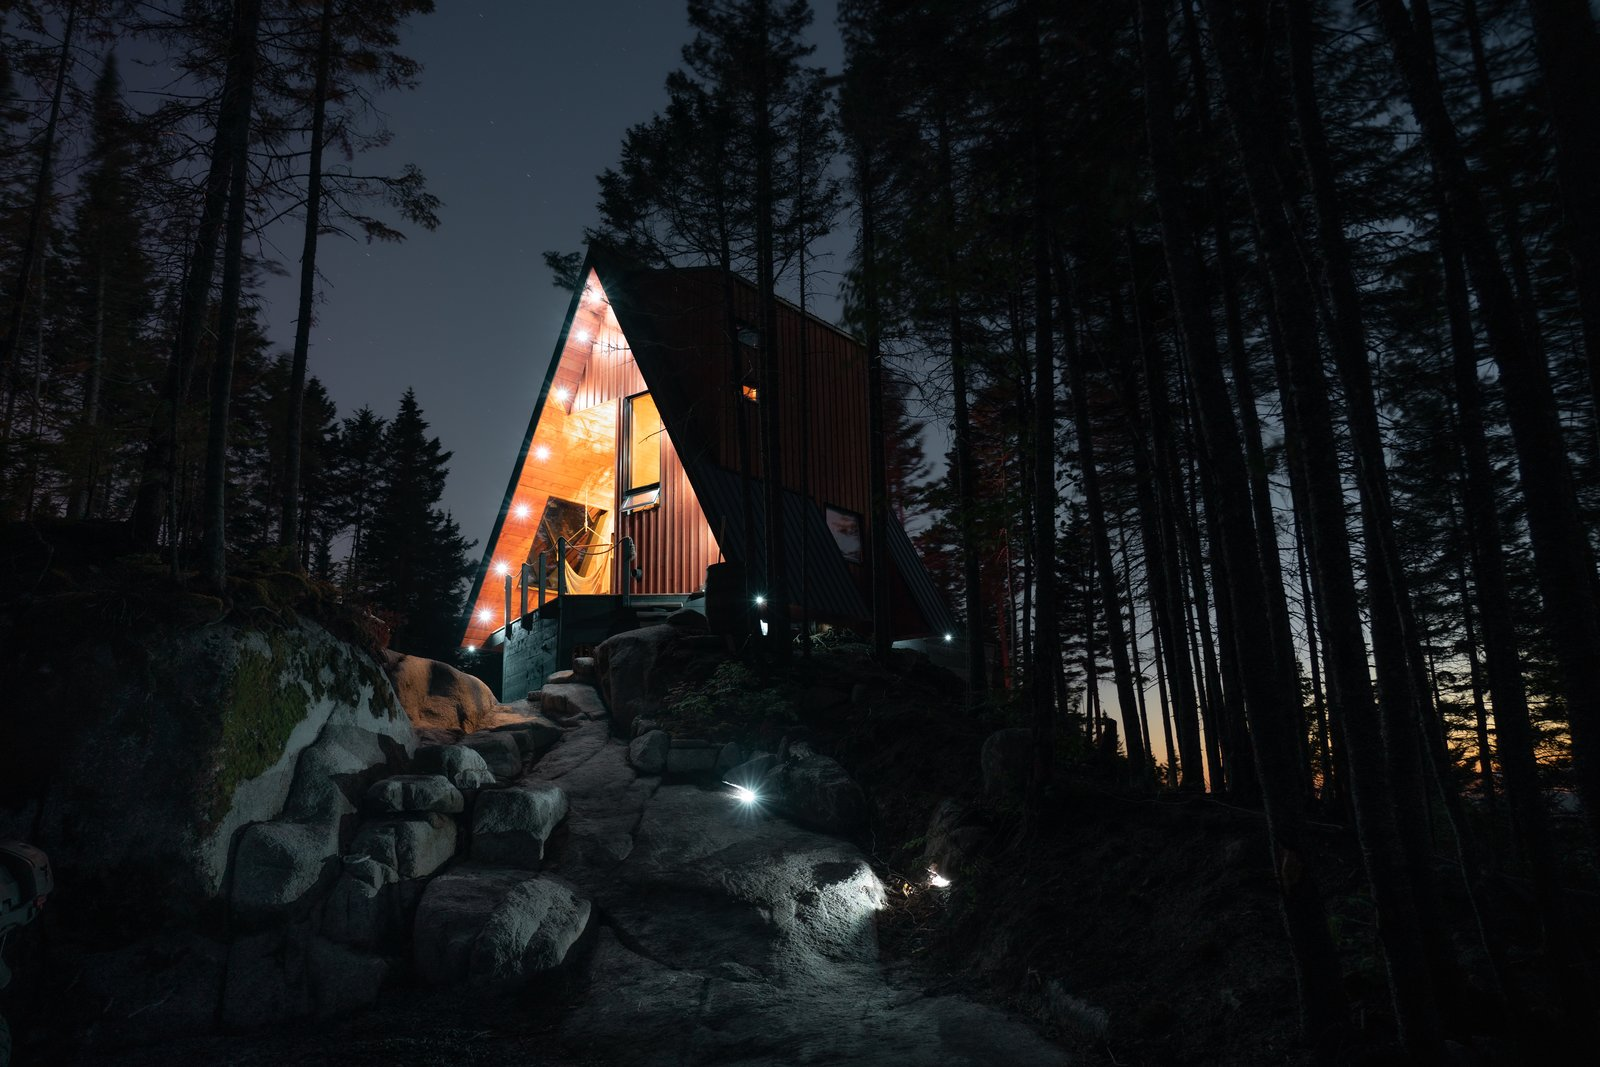 La Cabin Ride and Sleep by M4 Architecture